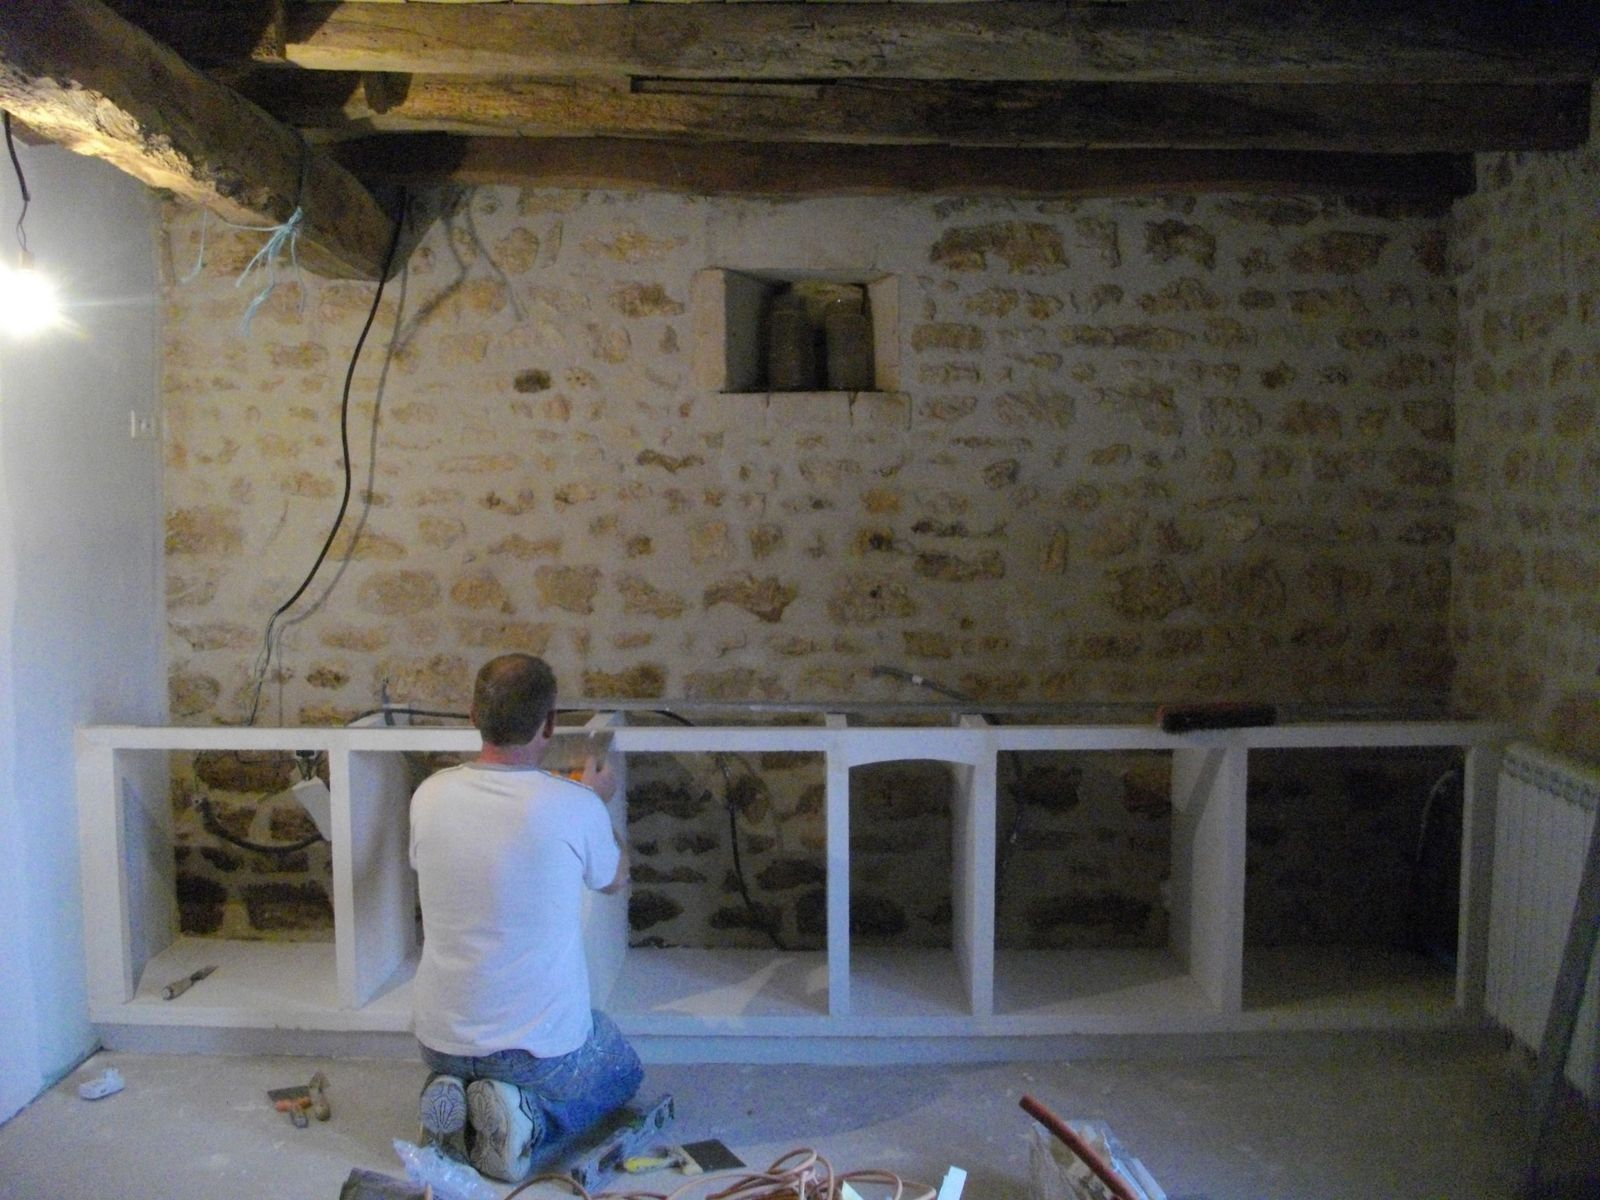 Debut de la cuisine renovation d 39 une grange for Poser des carreaux de platre sur du carrelage